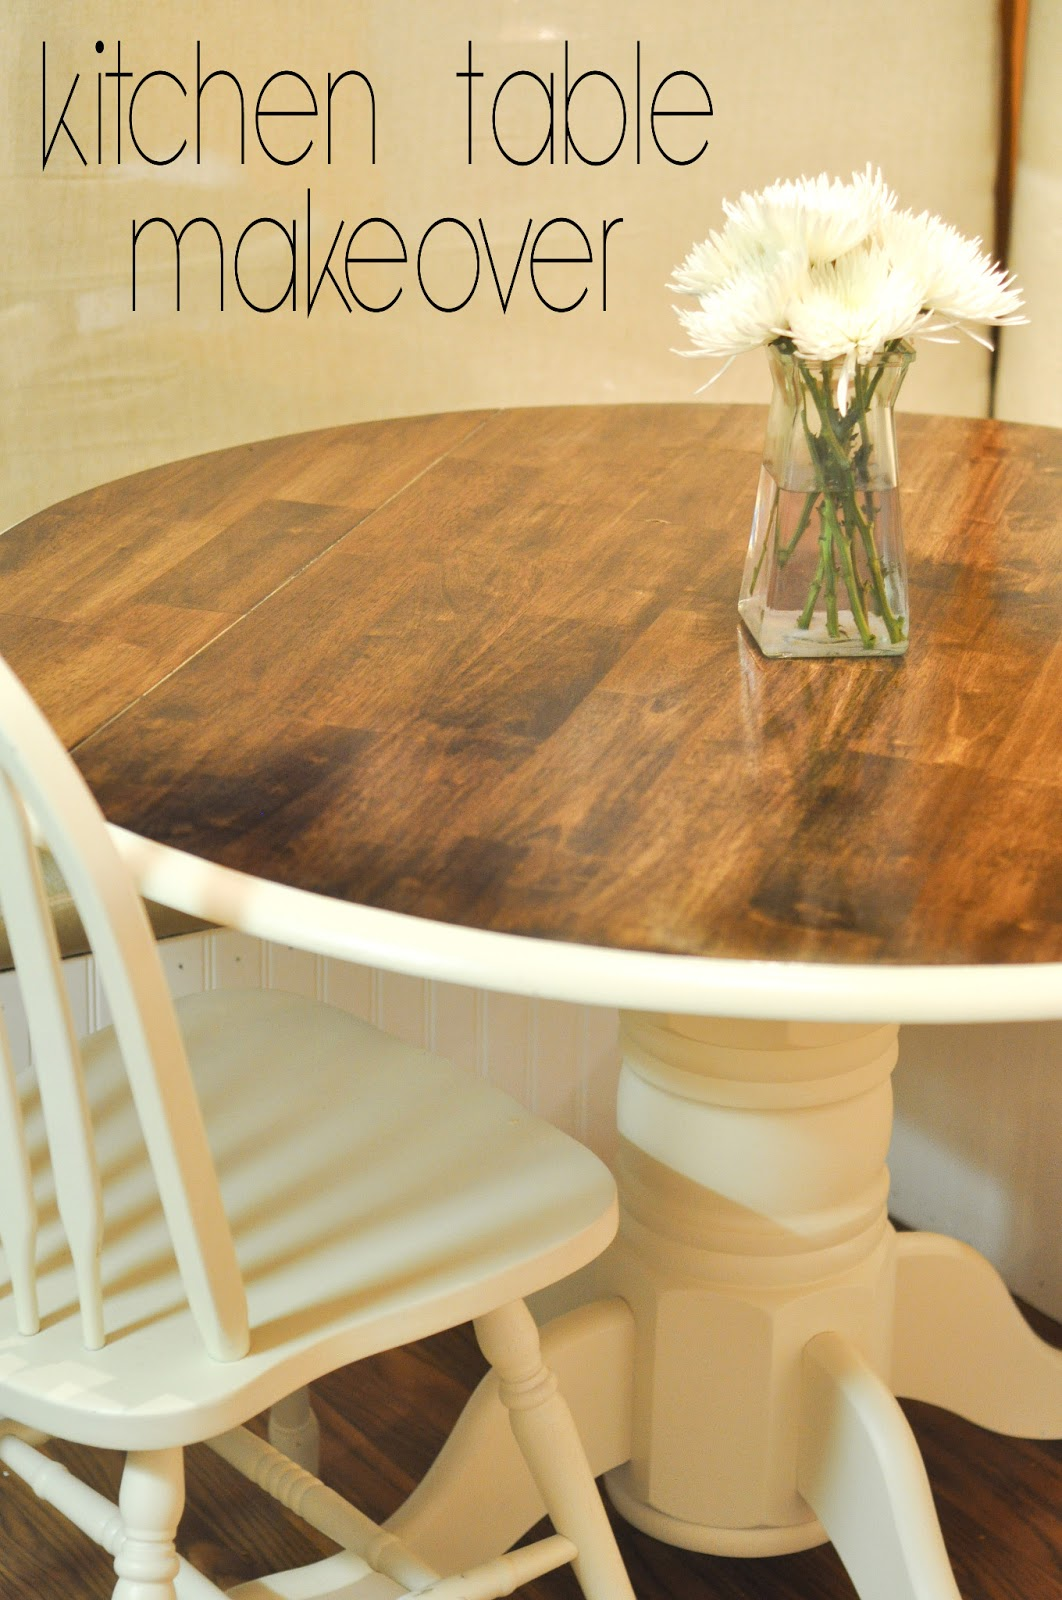 Decorating through dental school kitchen table makeover - Kitchen table redo ...